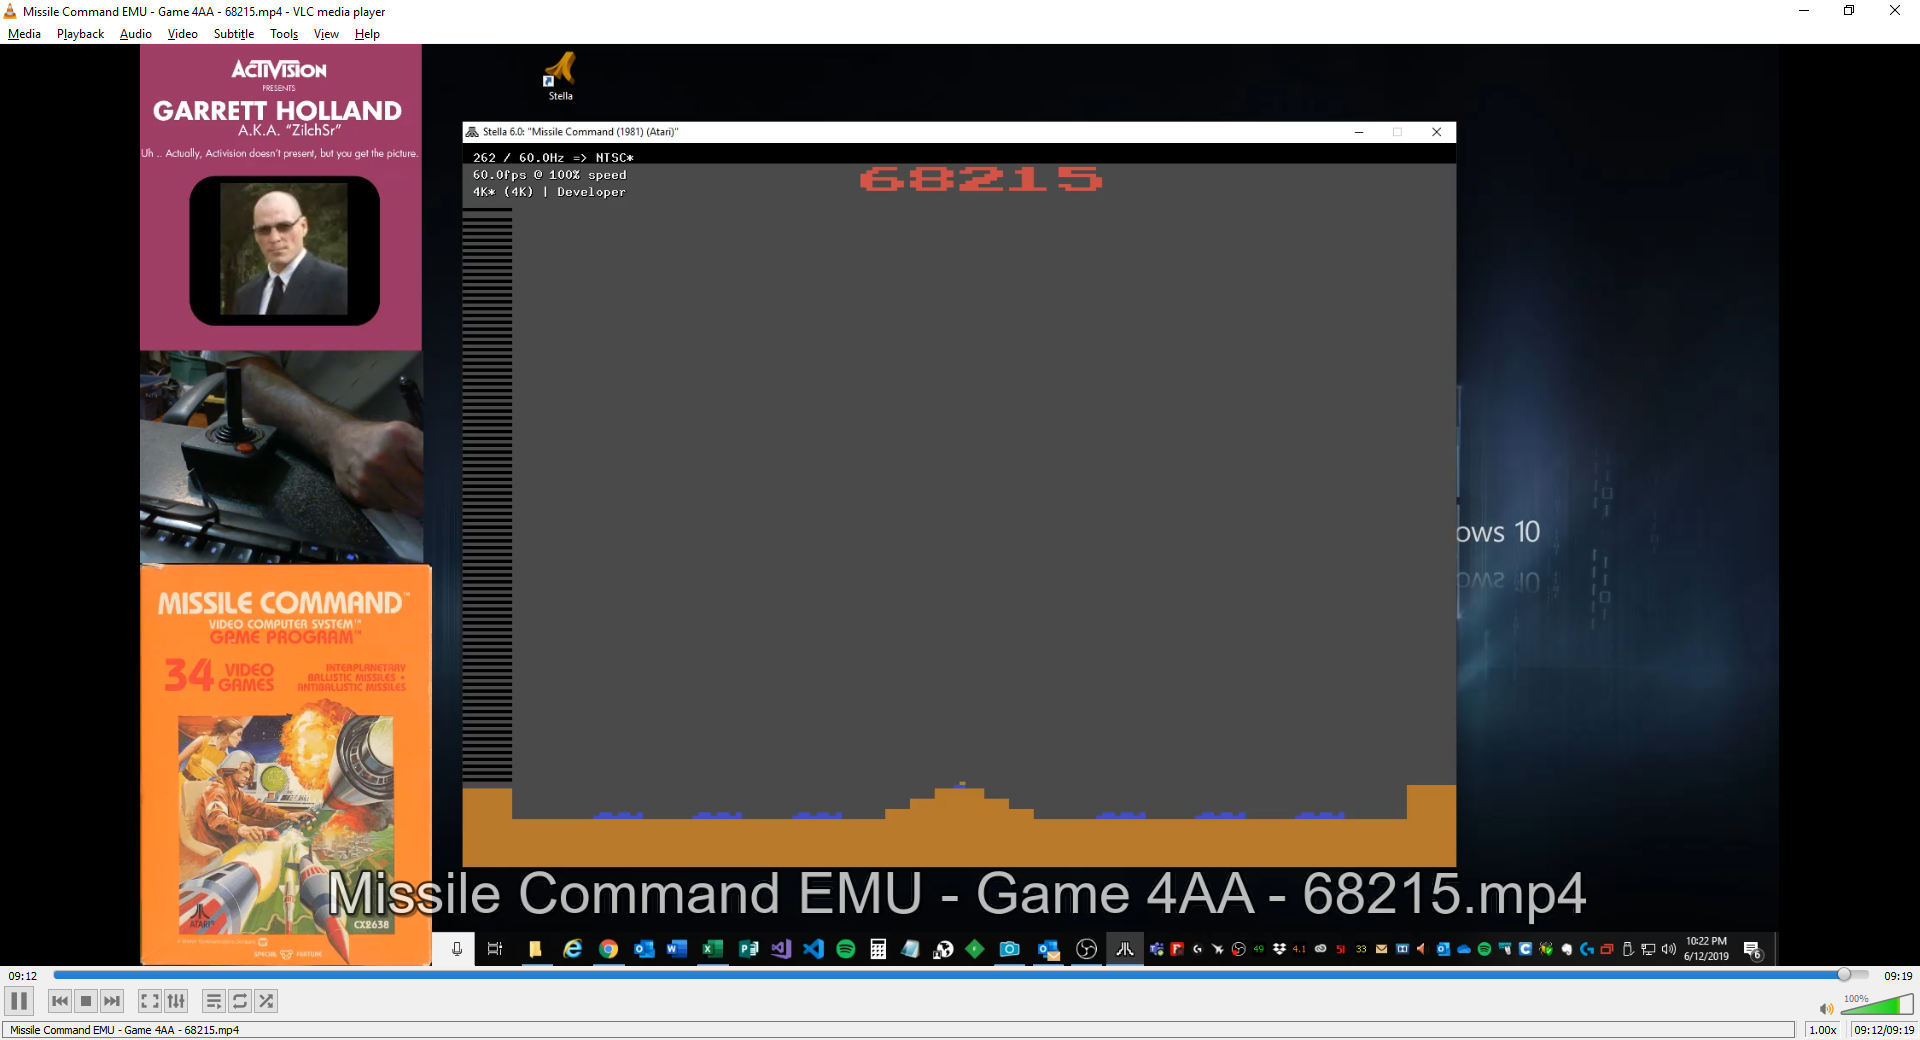 ZilchSr: Missile Command: Game 4 (Atari 2600 Emulated Expert/A Mode) 68,215 points on 2019-06-12 21:26:01